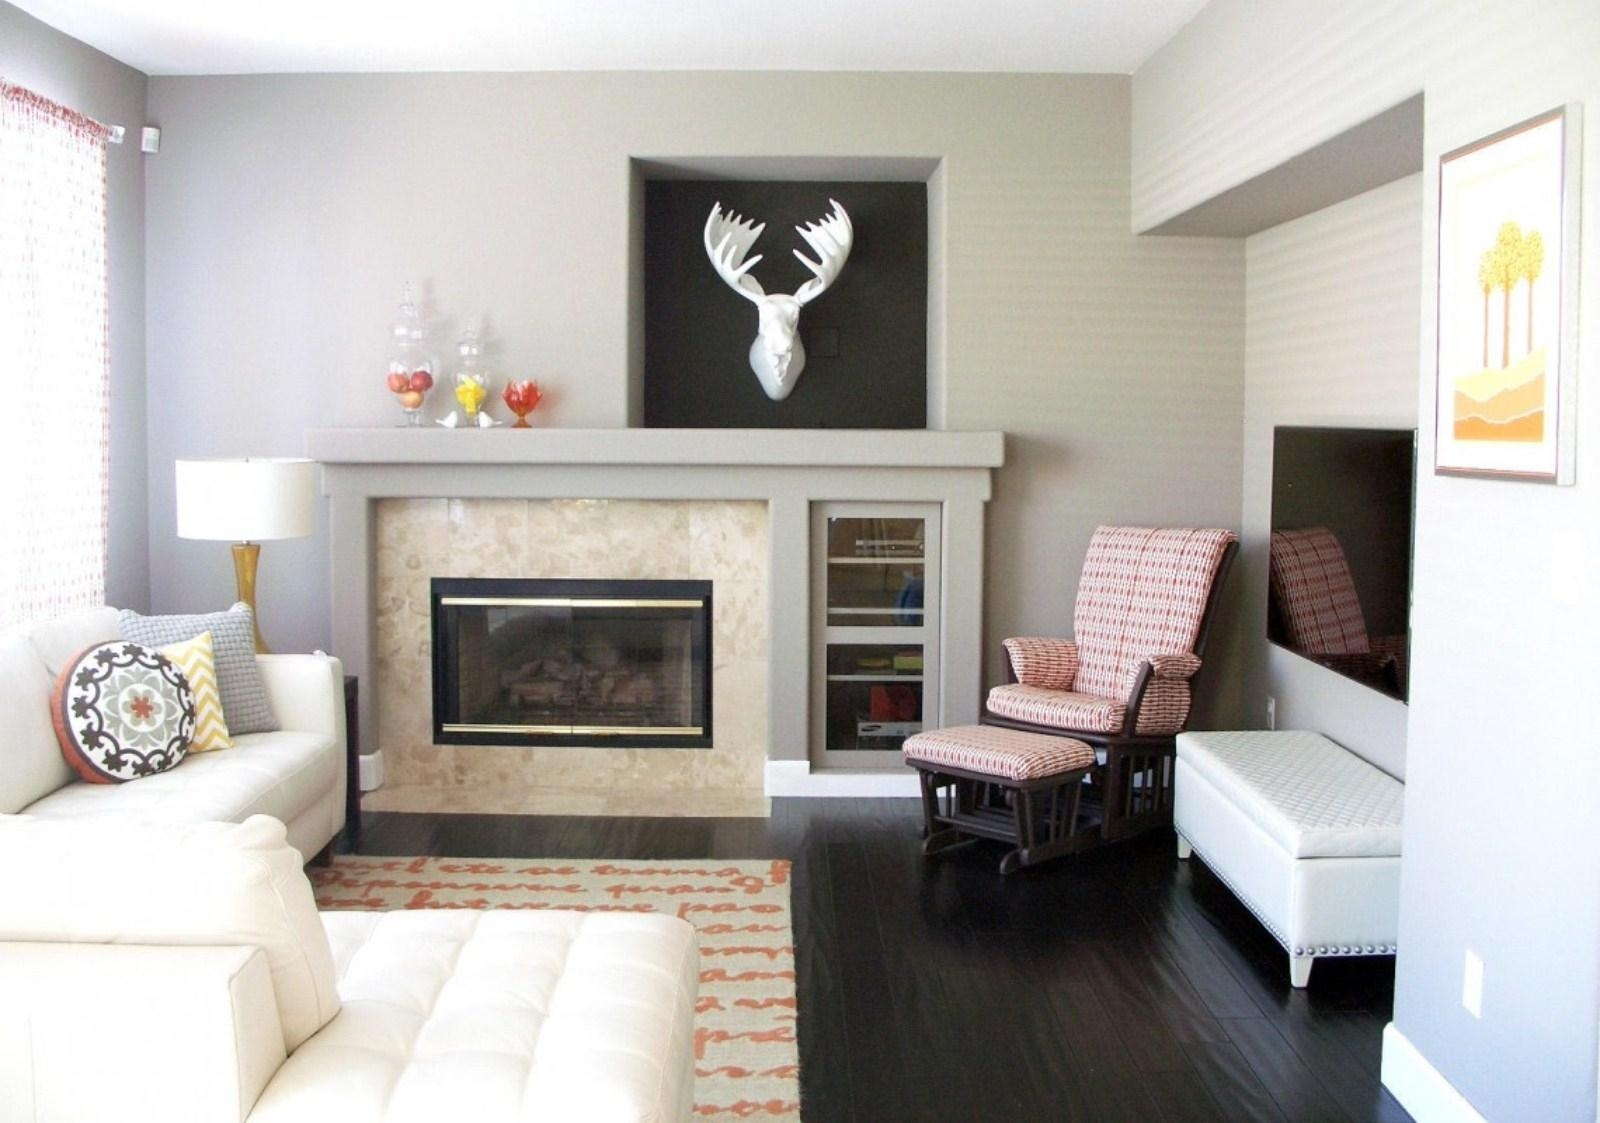 Art Gallery Wall Ideas Above Fireplace For Small Family Room In Fireplace Wall Art (View 5 of 20)